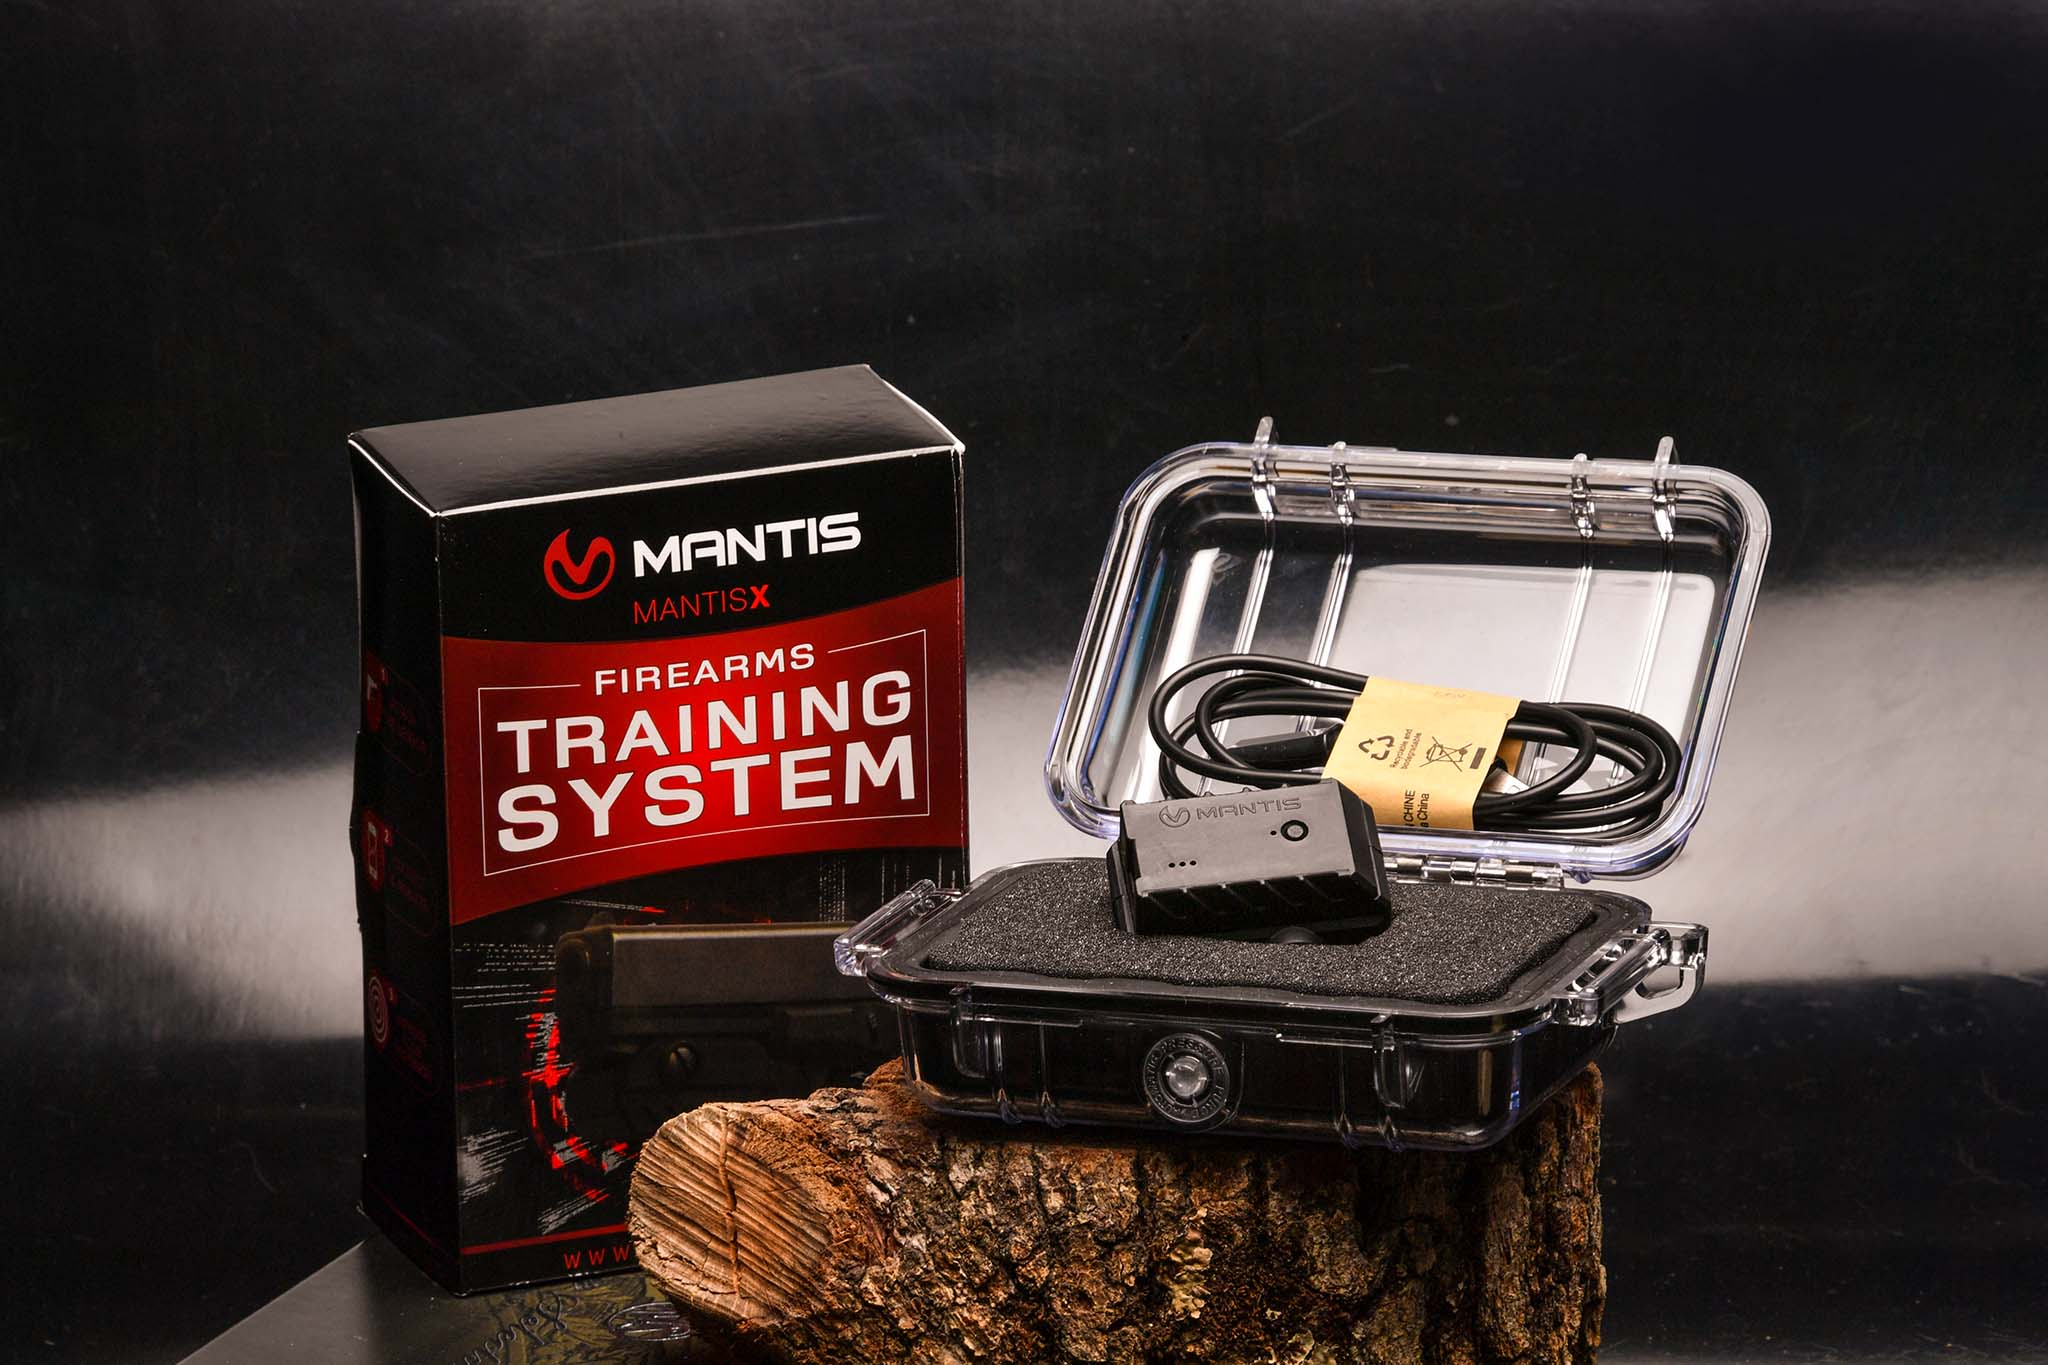 MantisX firearms training system with case